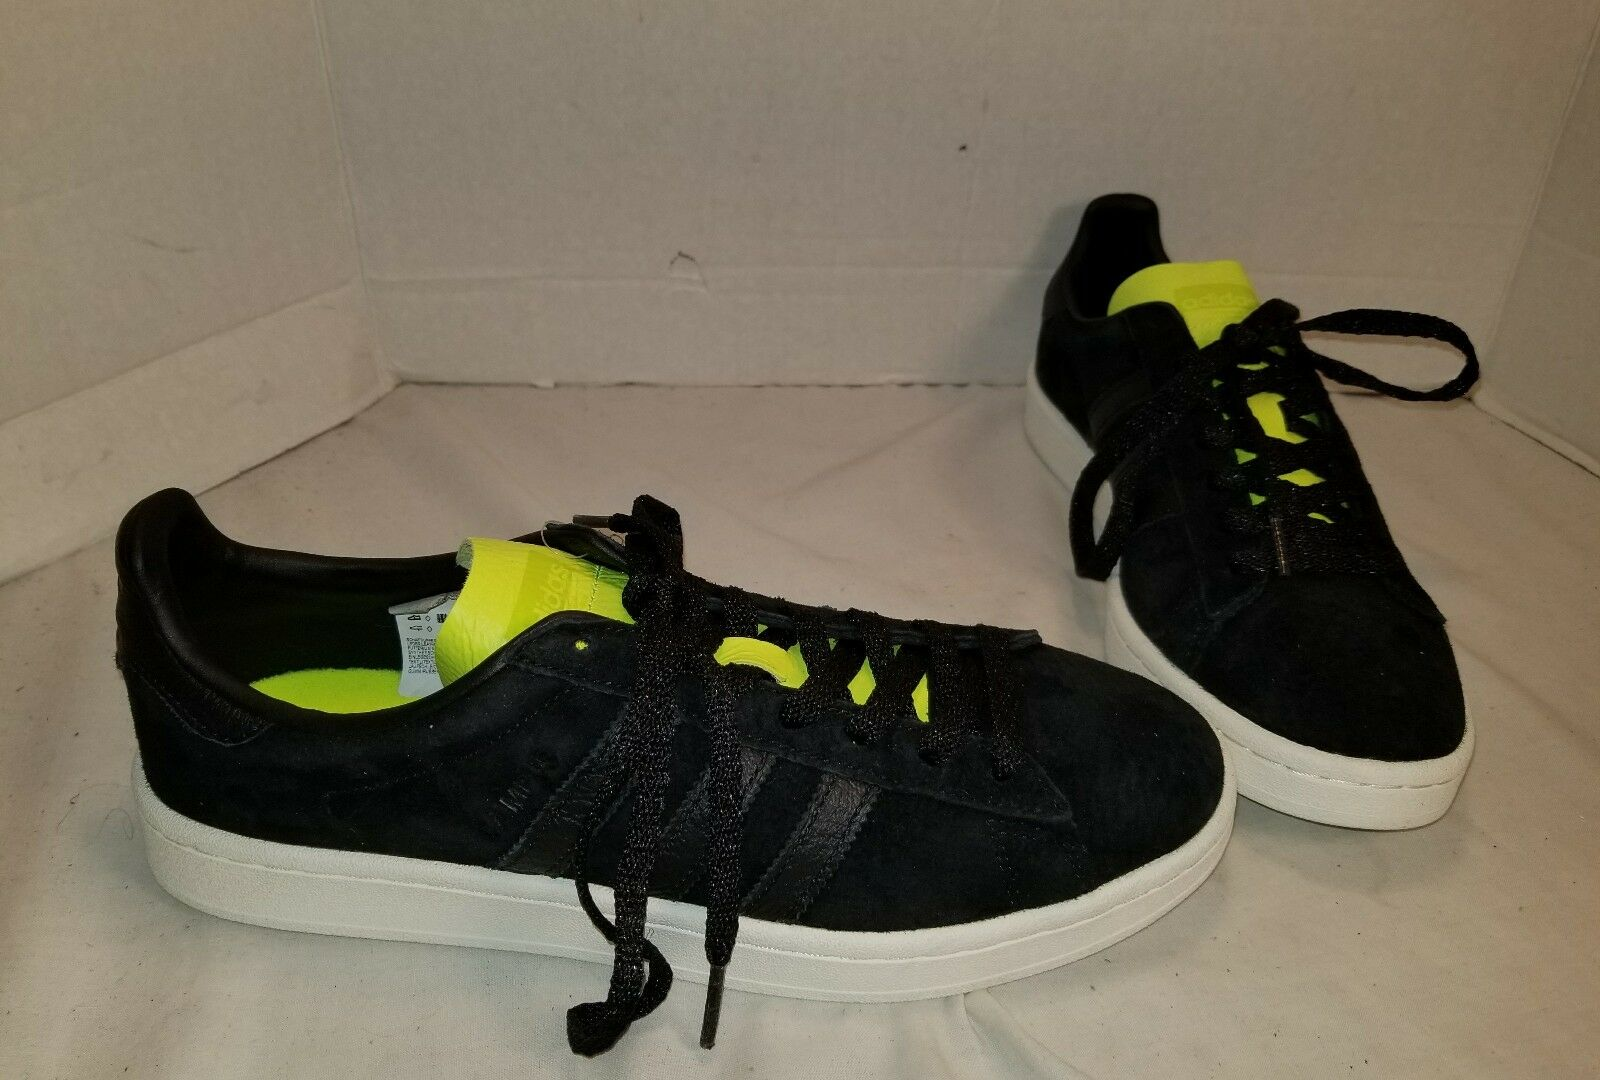 NEW MEN'S ADIDAS CAMPUS BLACK SUEDE WITH NEON SNEAKERS SHOE SIZE US 9